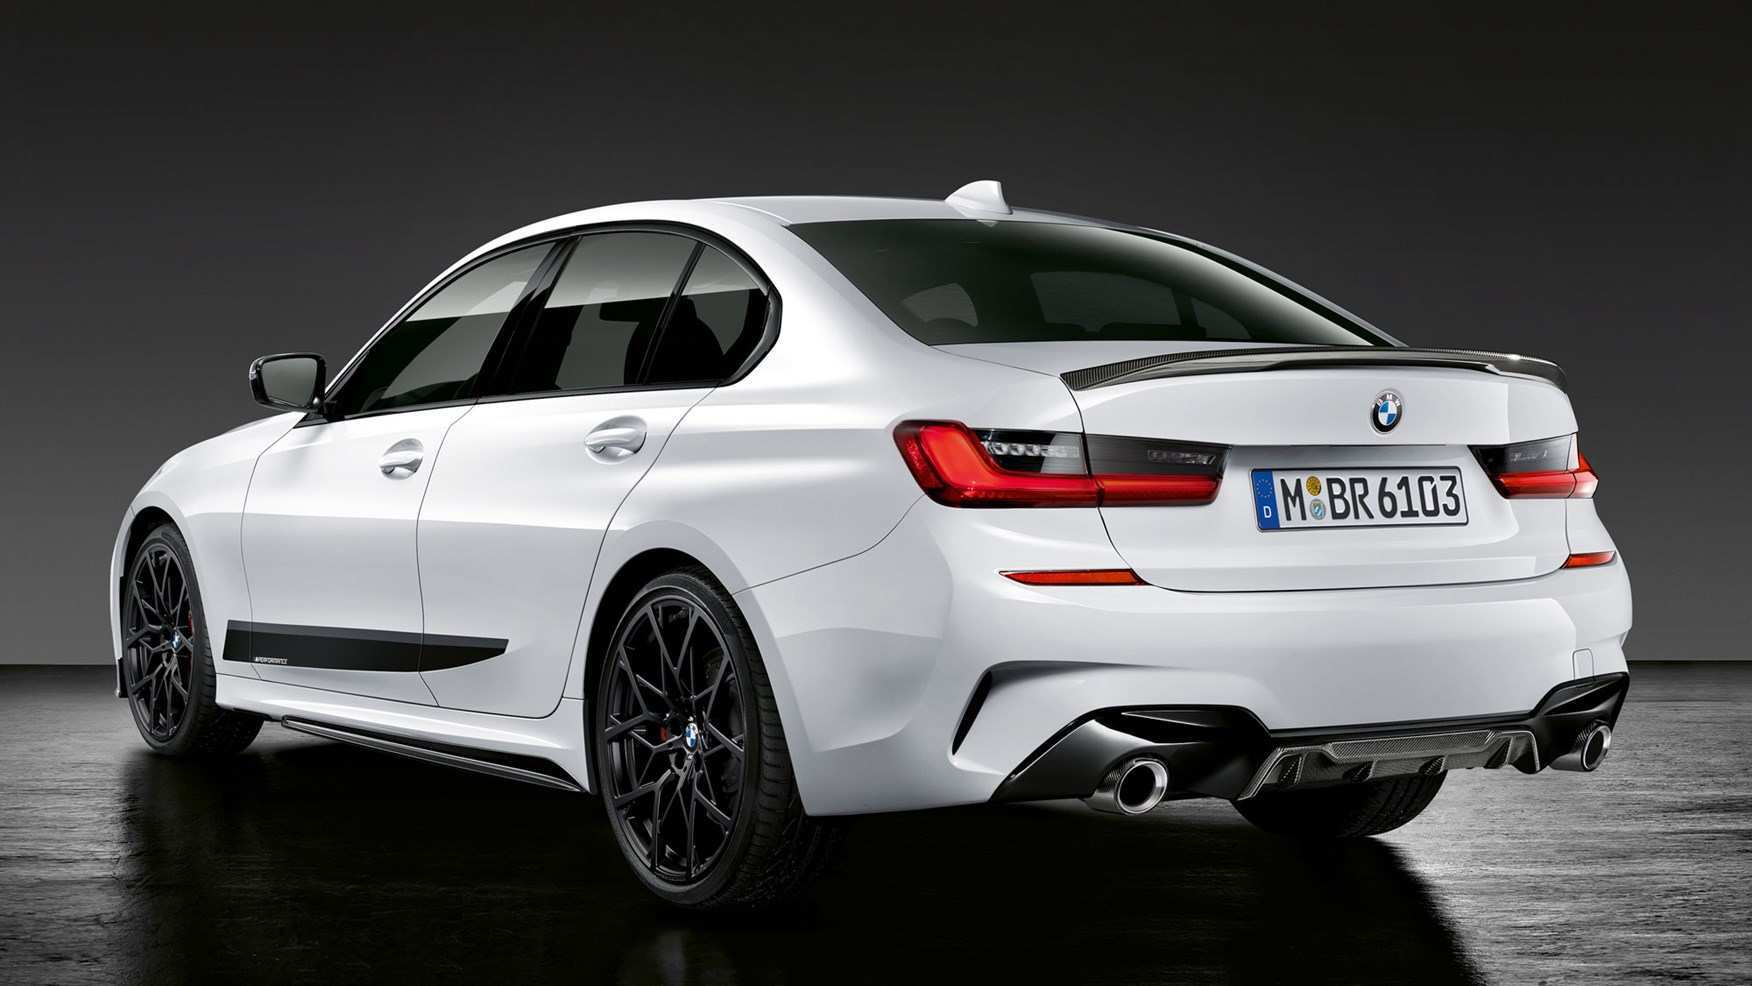 54 The Best 2019 Bmw 3 Series G20 Review And Release Date